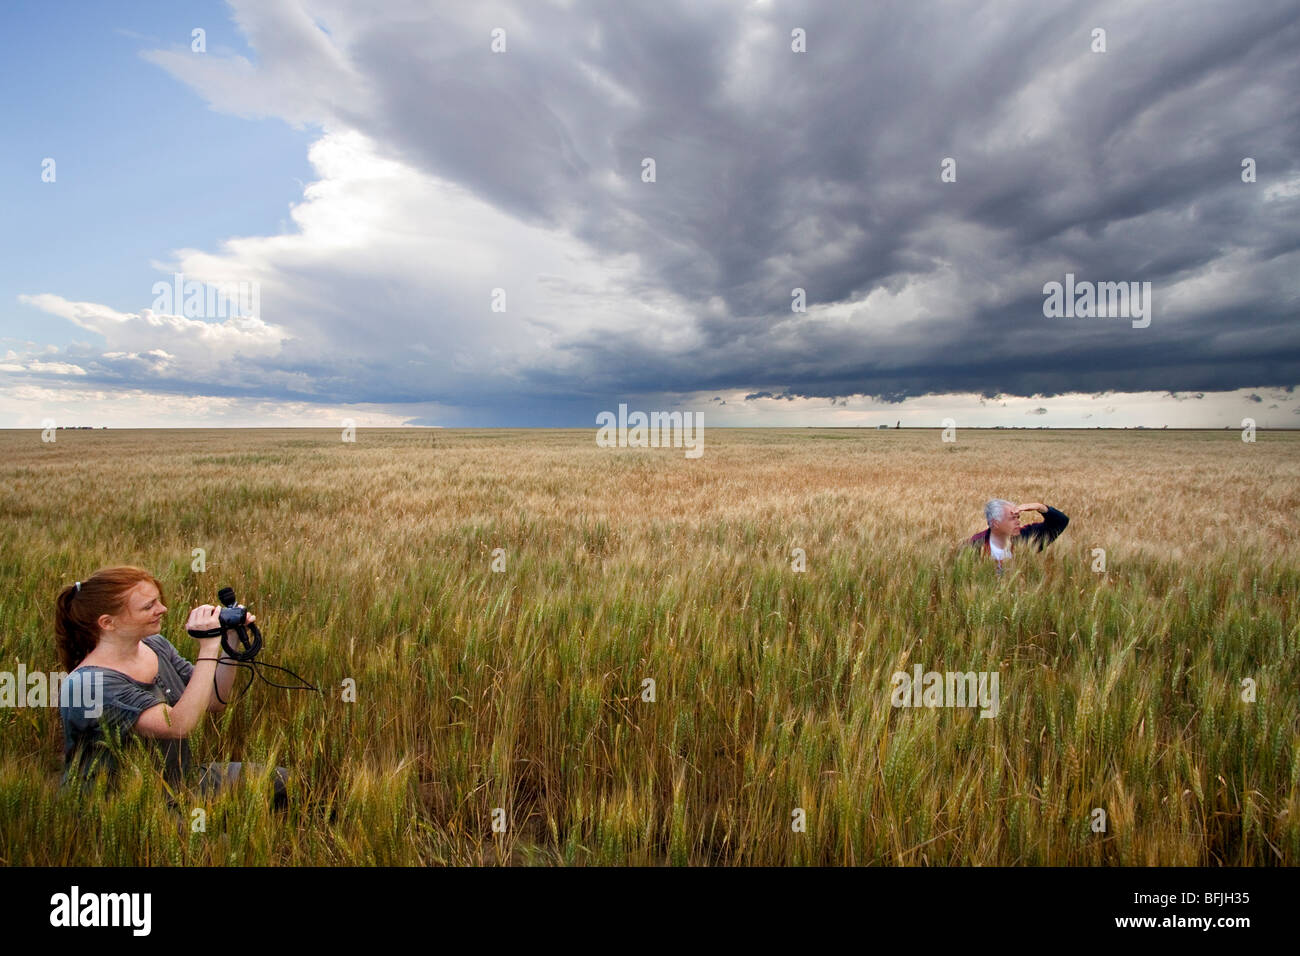 Storm chaser Tim Marshall (right) and a journalist (left) in a prairie field in western Kansas, USA, June 10, 2009. - Stock Image